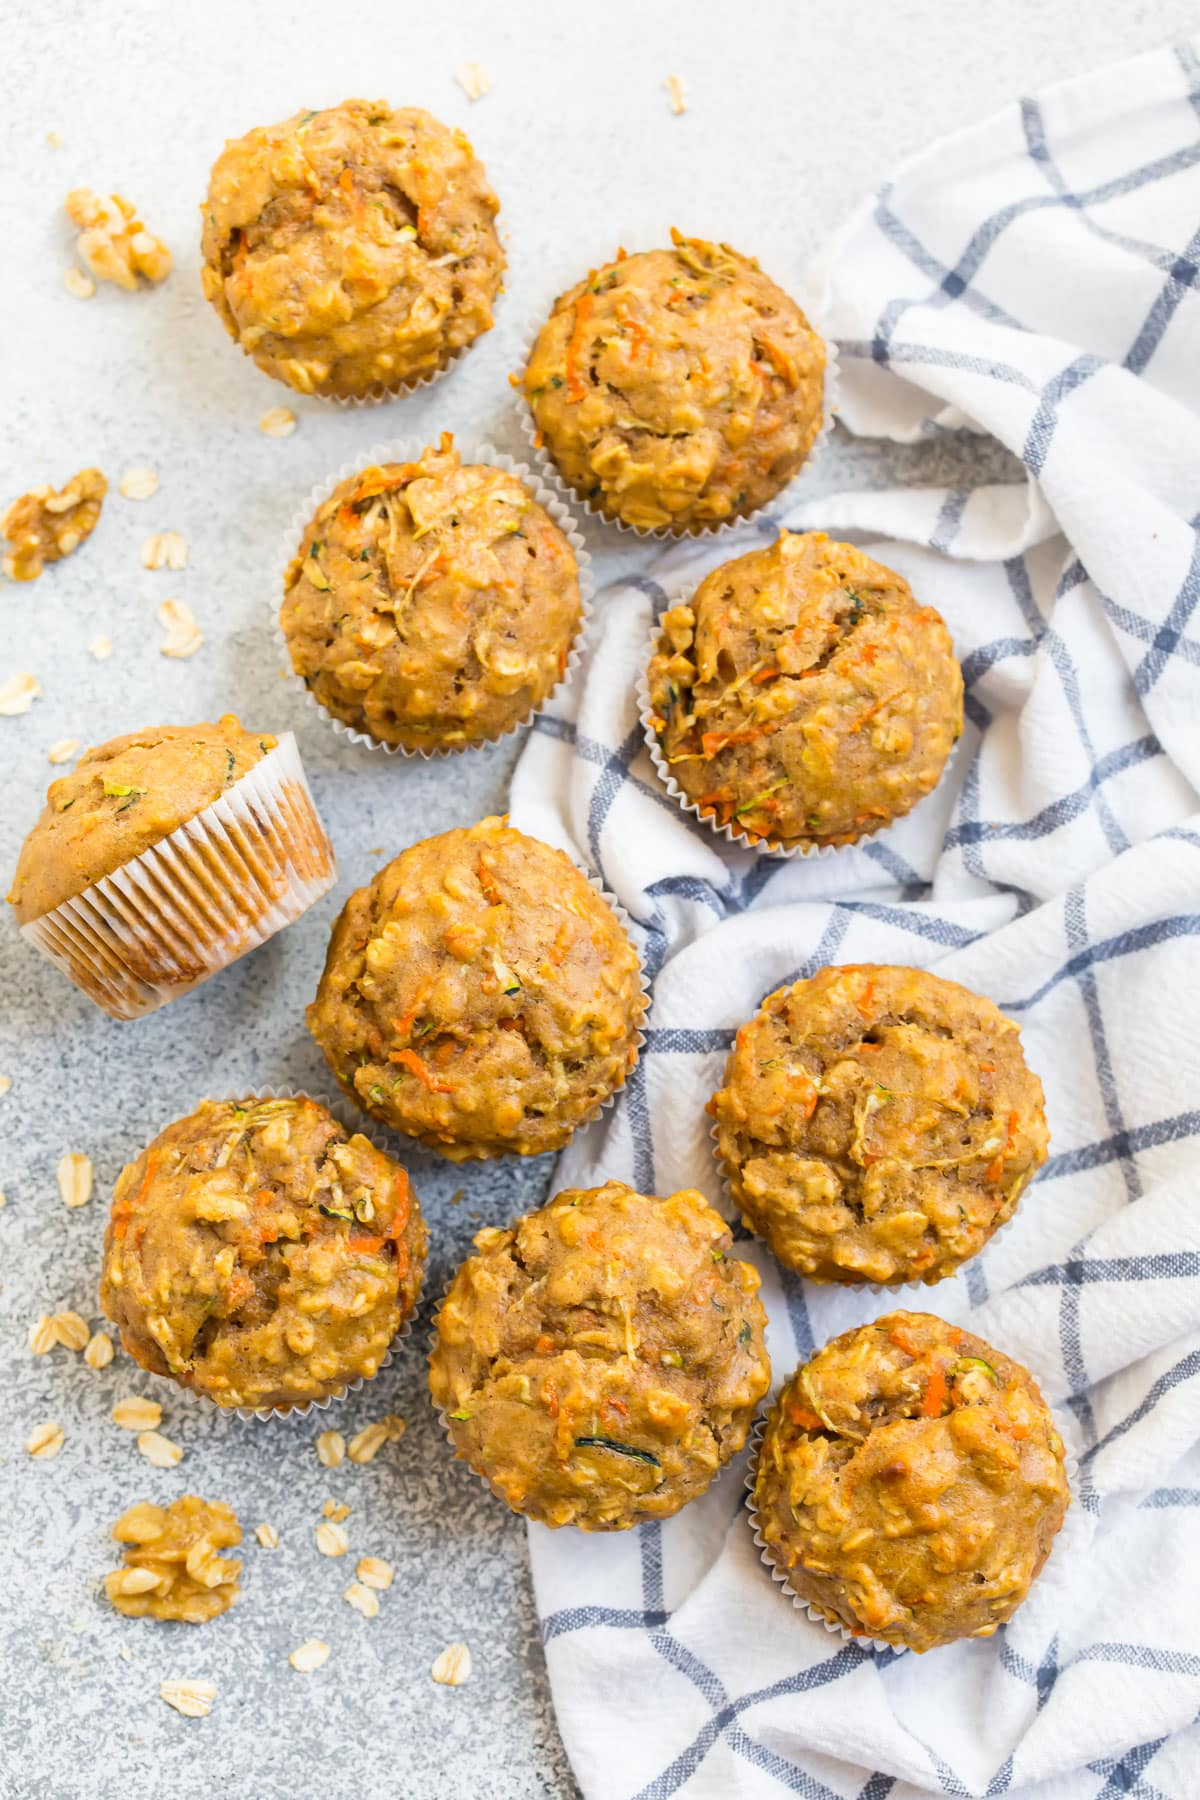 Easy zucchini carrot muffins in muffin liners